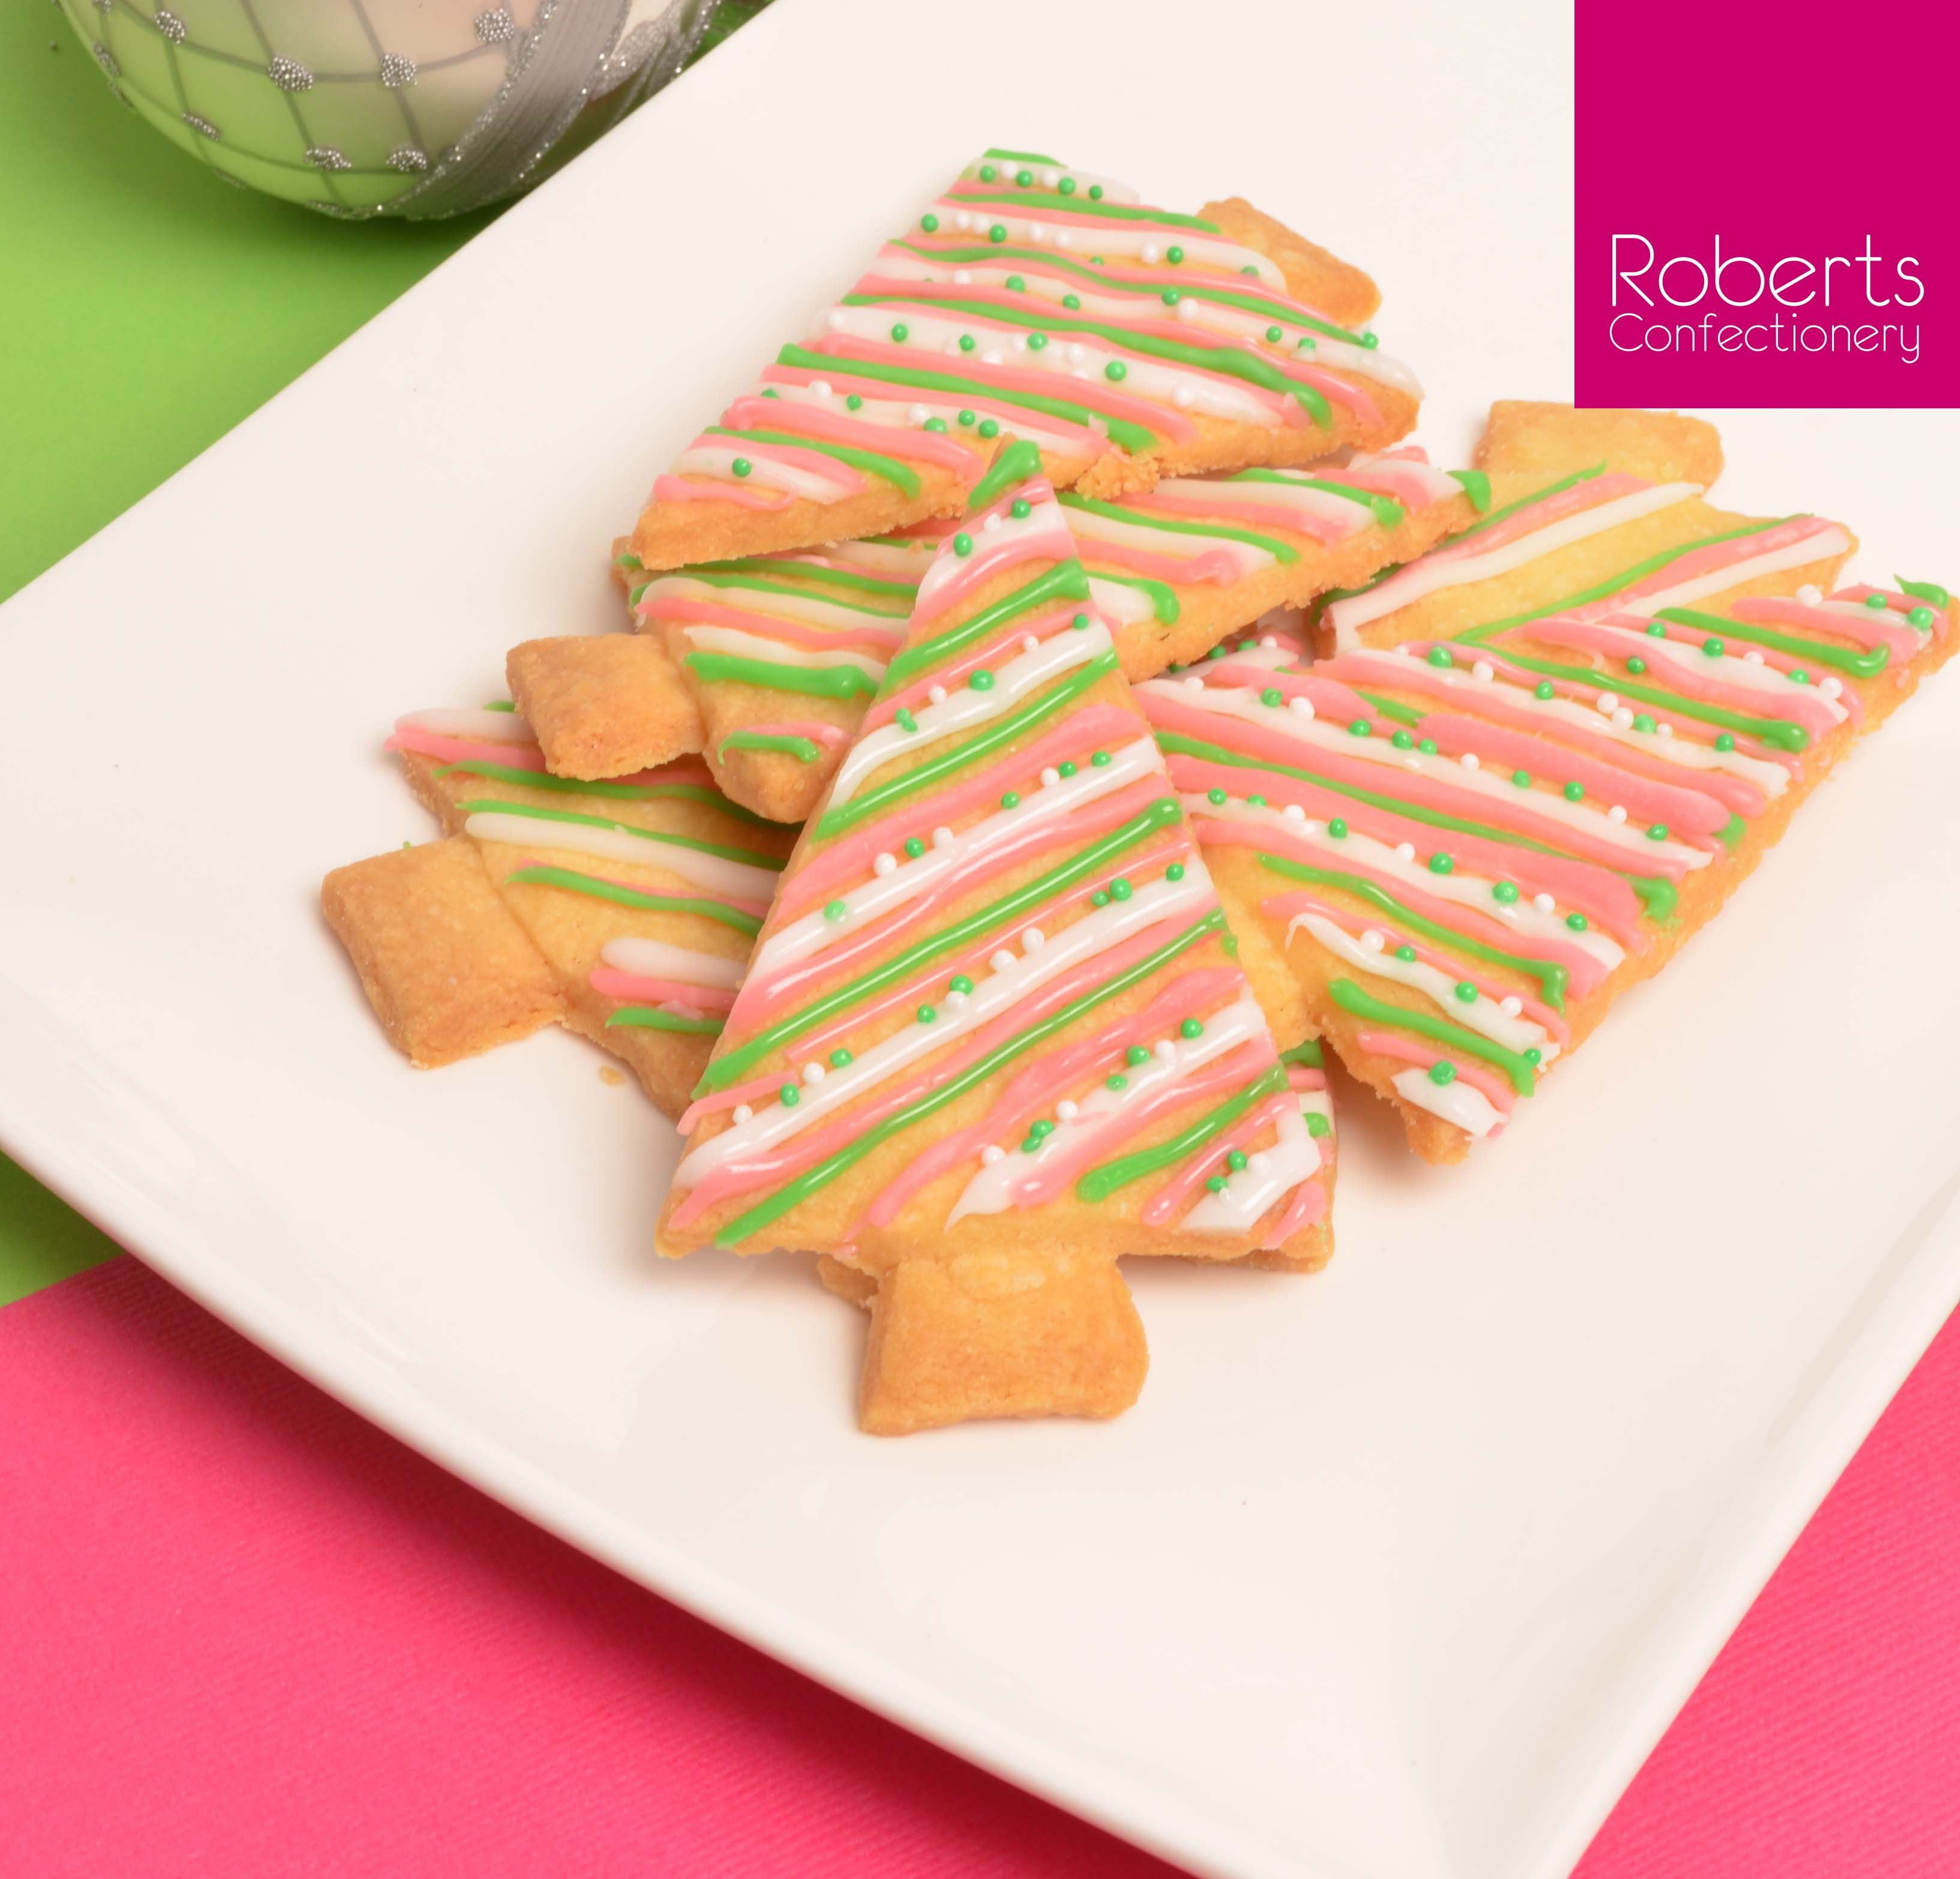 Christmas Cookies Piped With Roberts Confectionery Fondant Creme